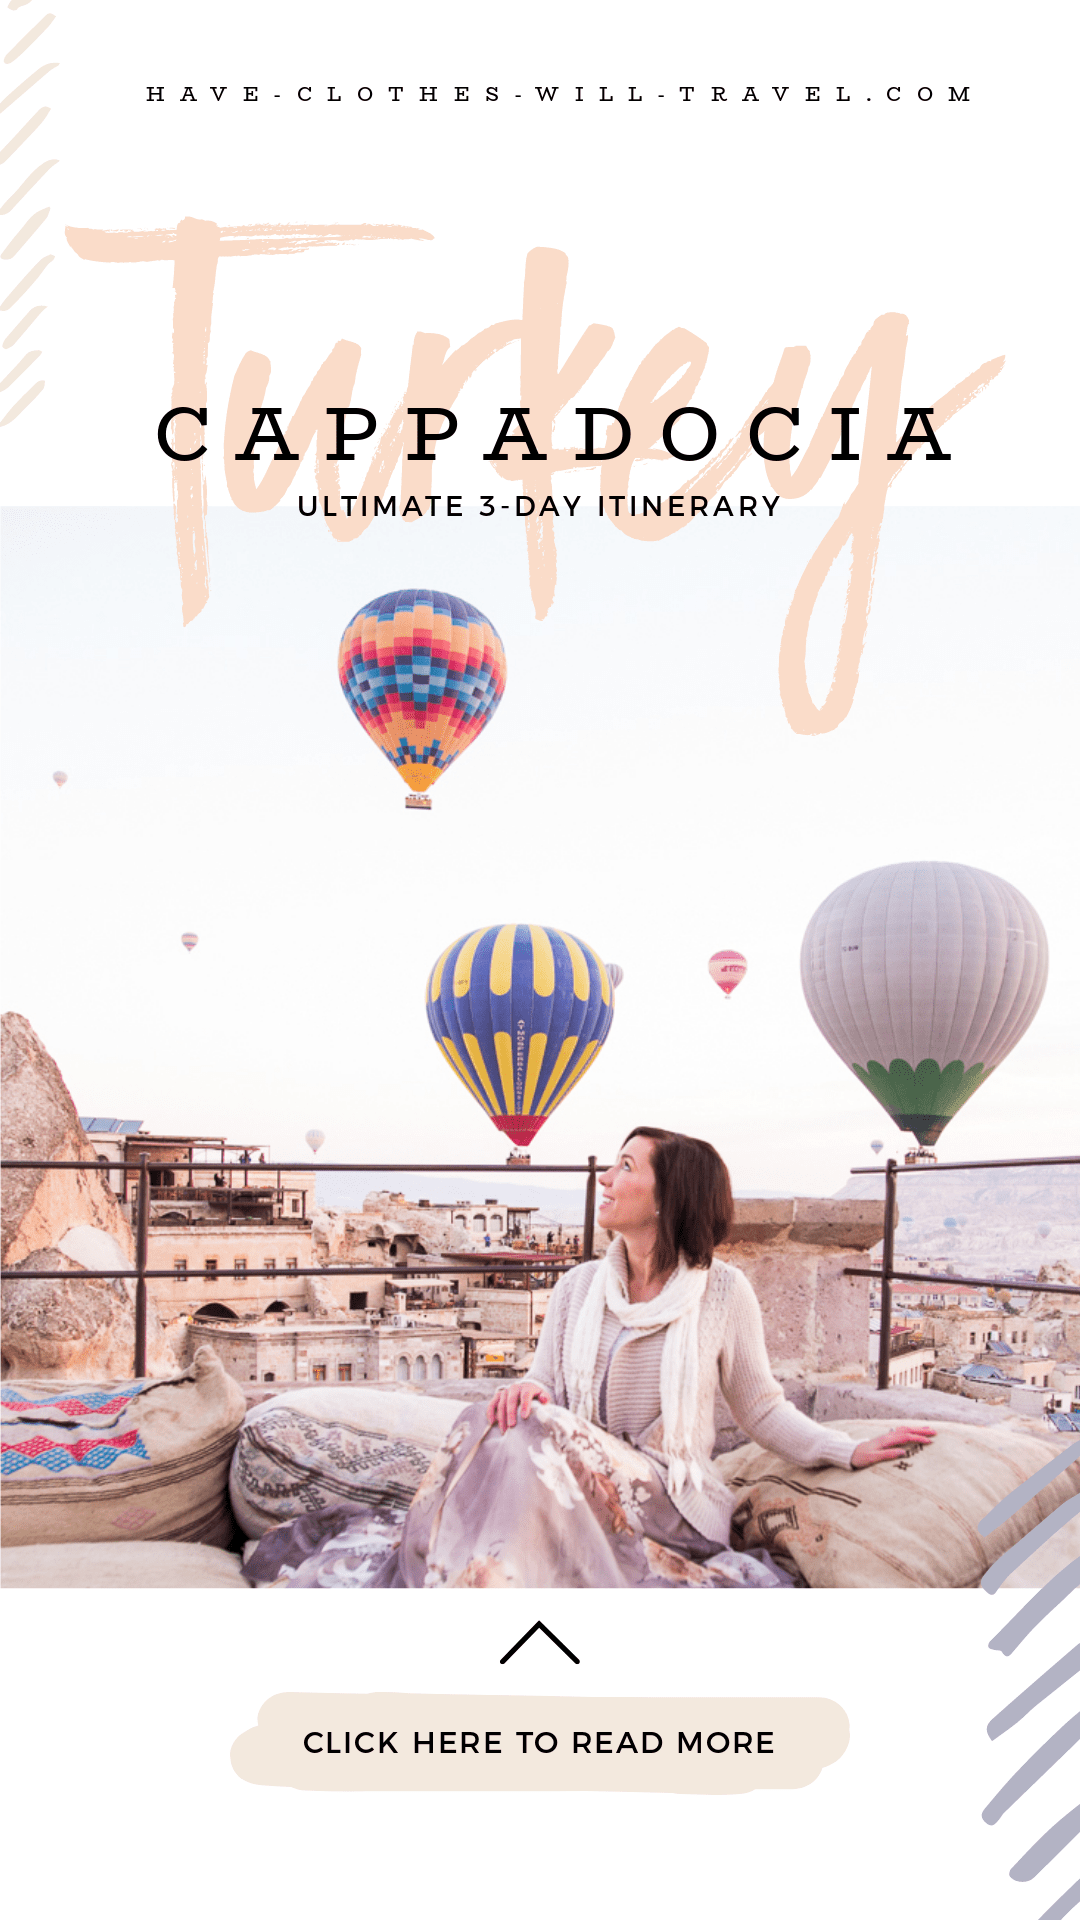 How to Spend 3 Days in Cappadocia, Turkey - The Ultimate Itinerary